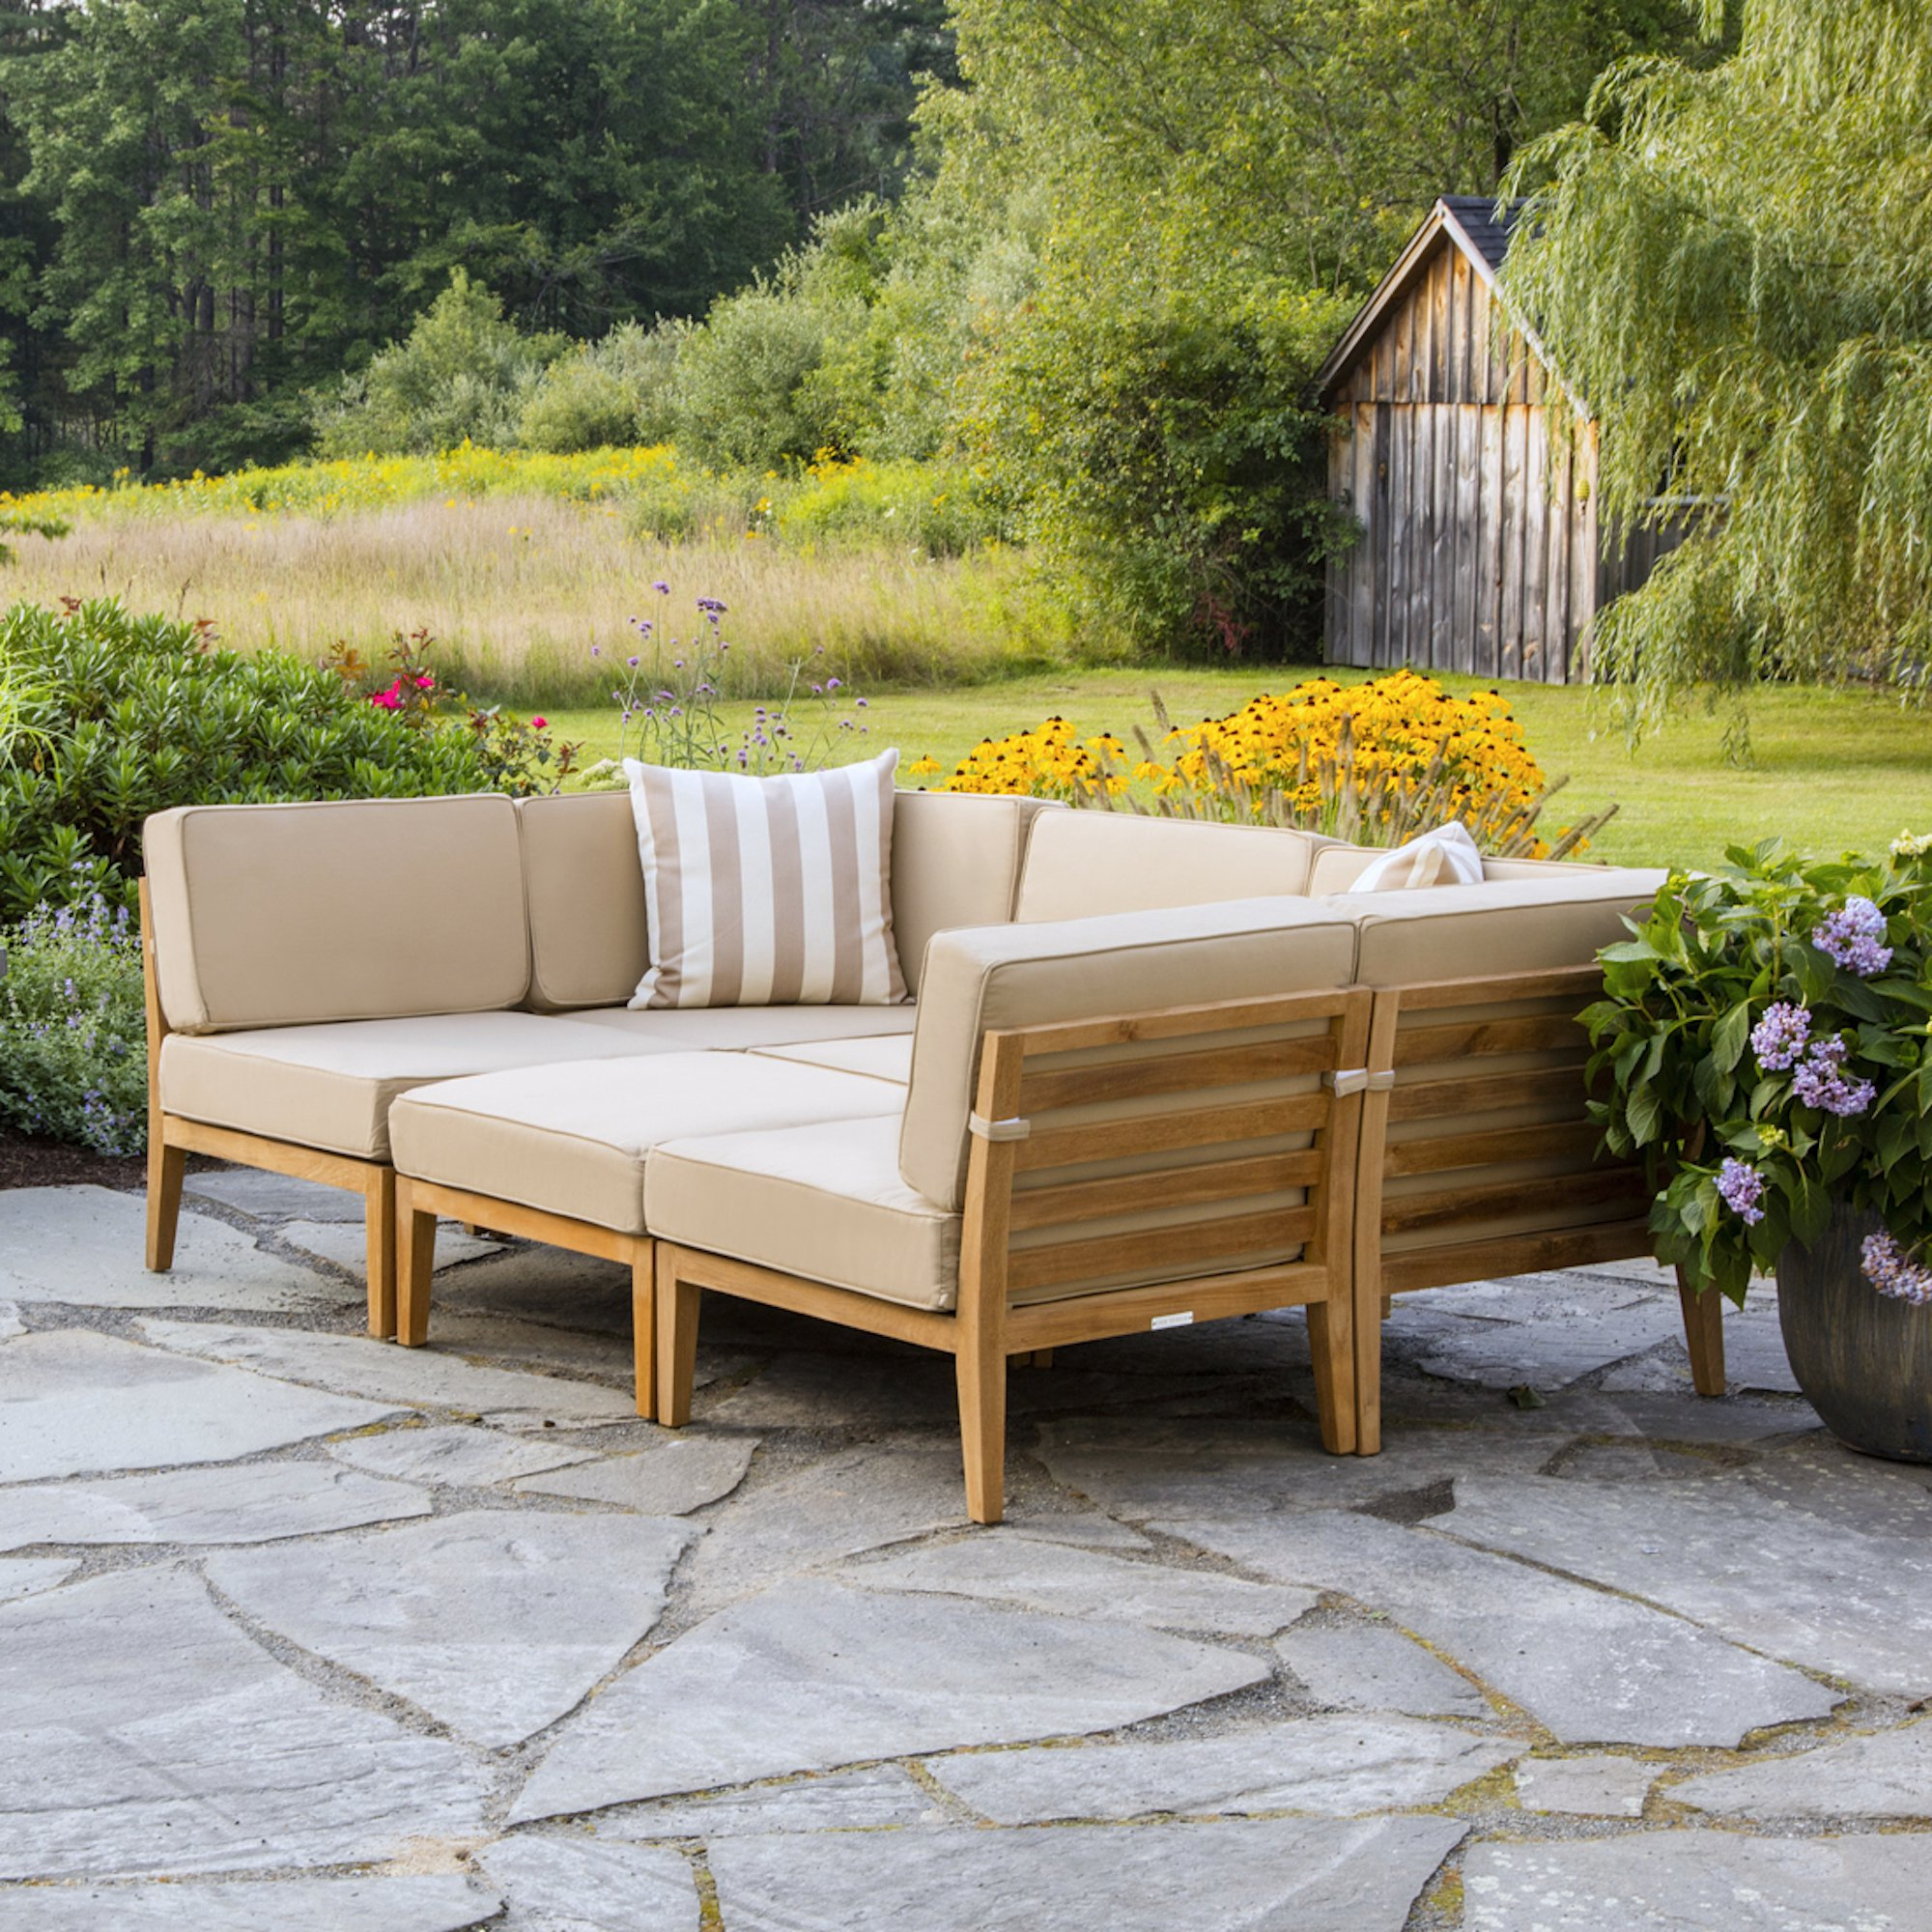 Greta Living Patio Sectionals With Cushions Throughout Widely Used Madbury Road Bali Teak Patio Sectional With Cushions (View 12 of 20)